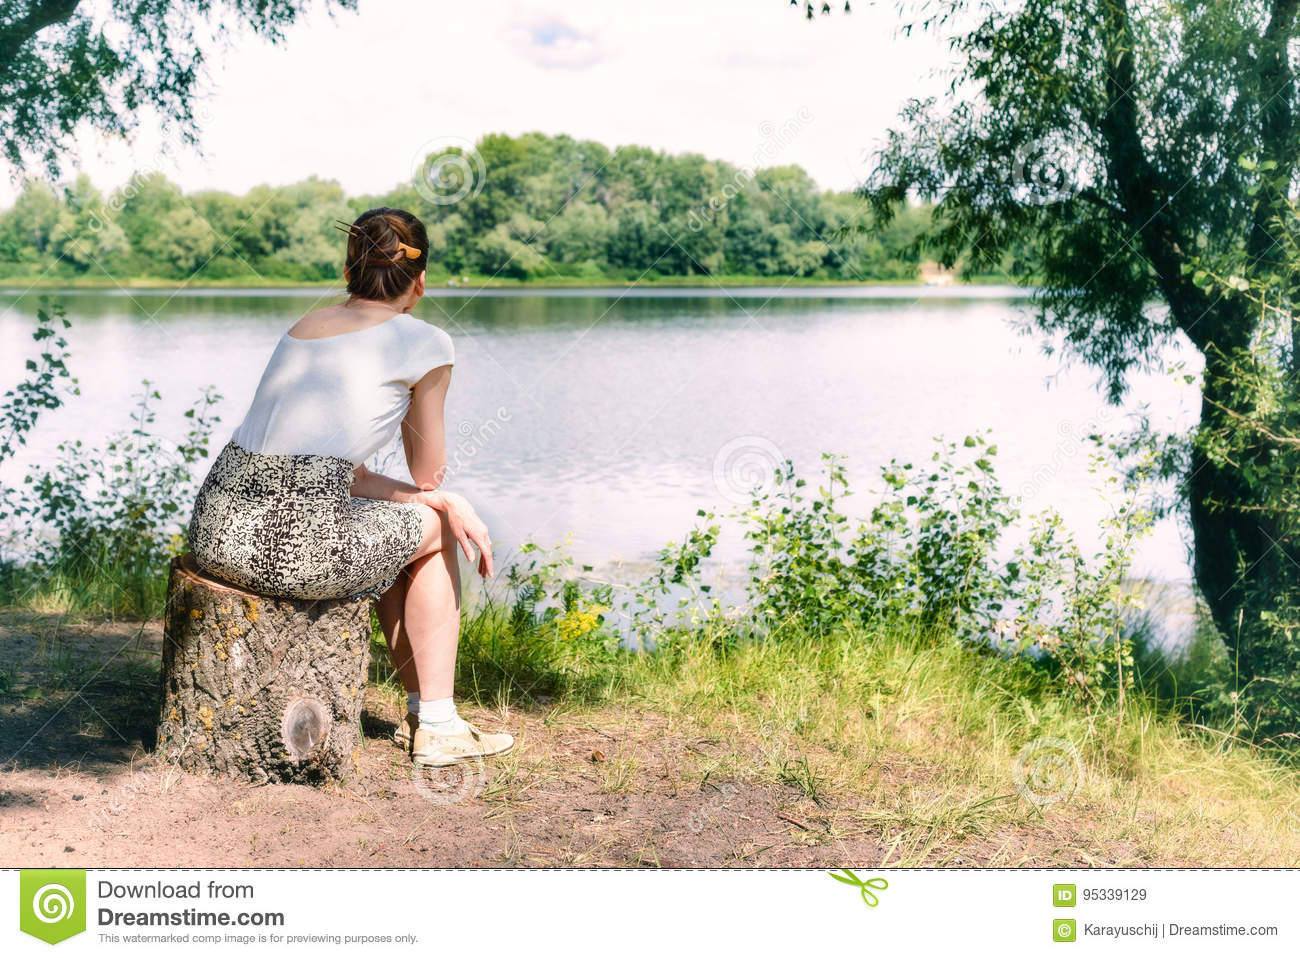 Woman Sitting Close to the River